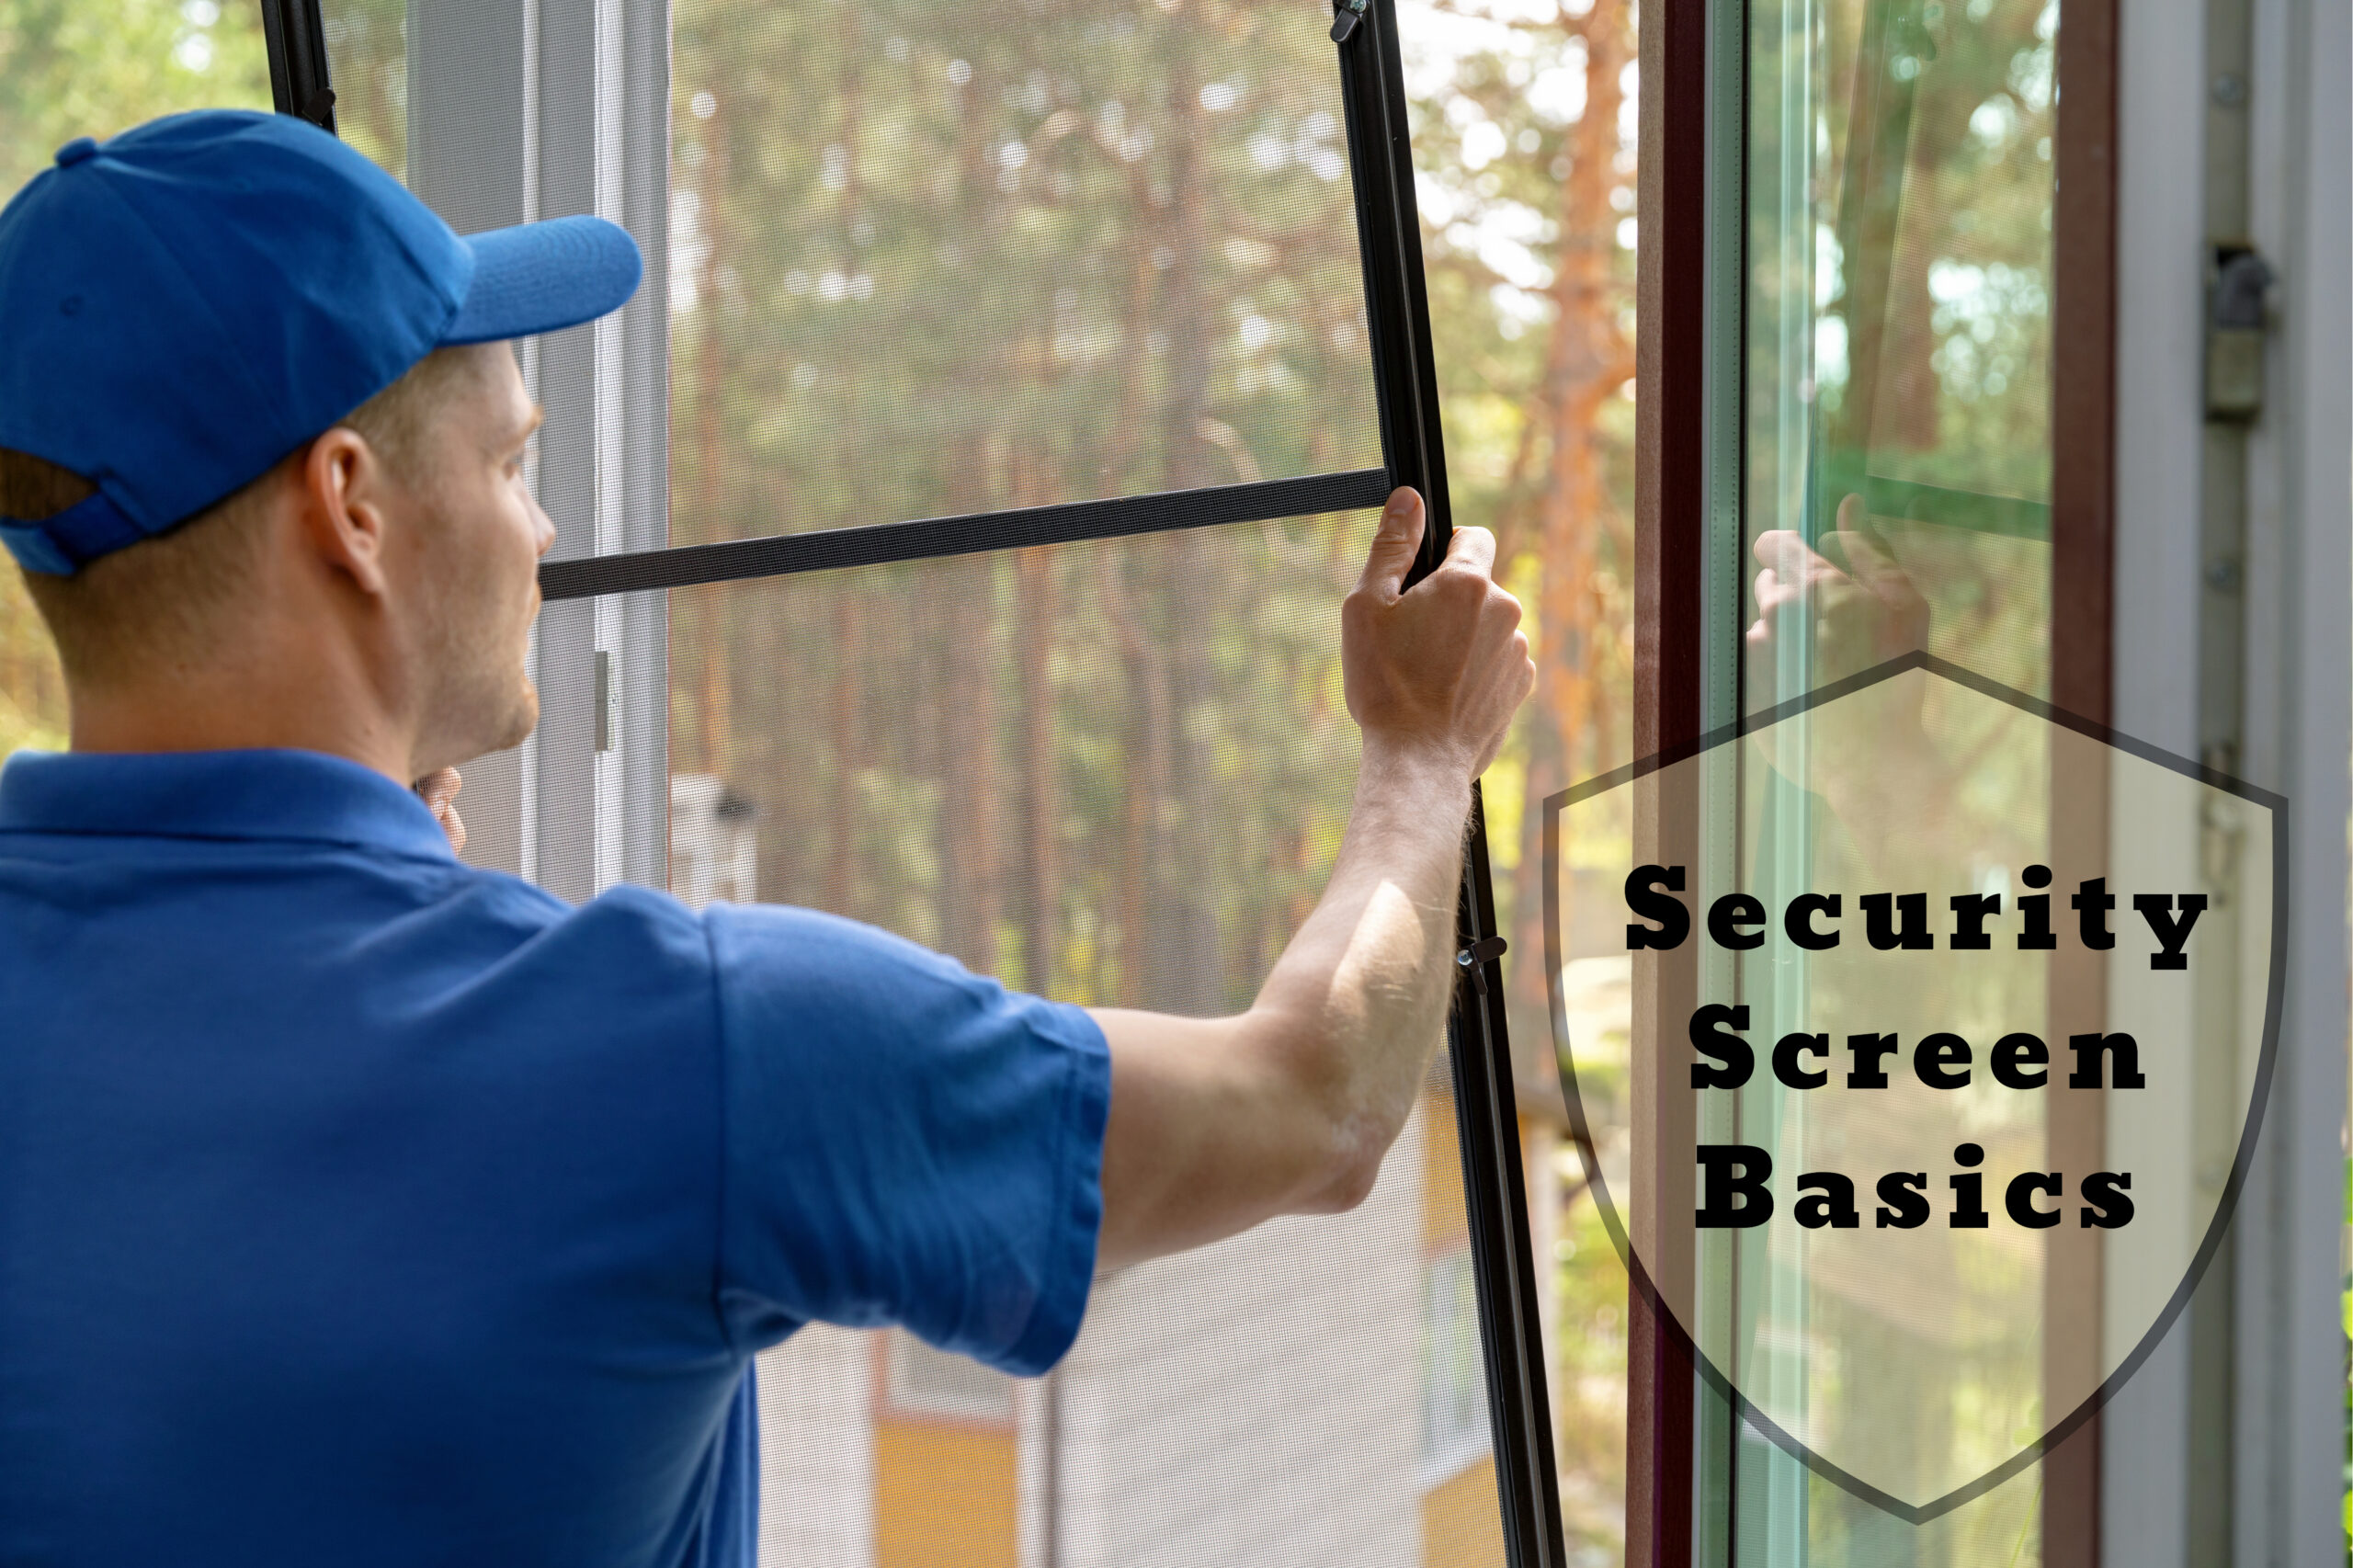 Window and door security screen basics to help you make the right choice in protection for your home or business